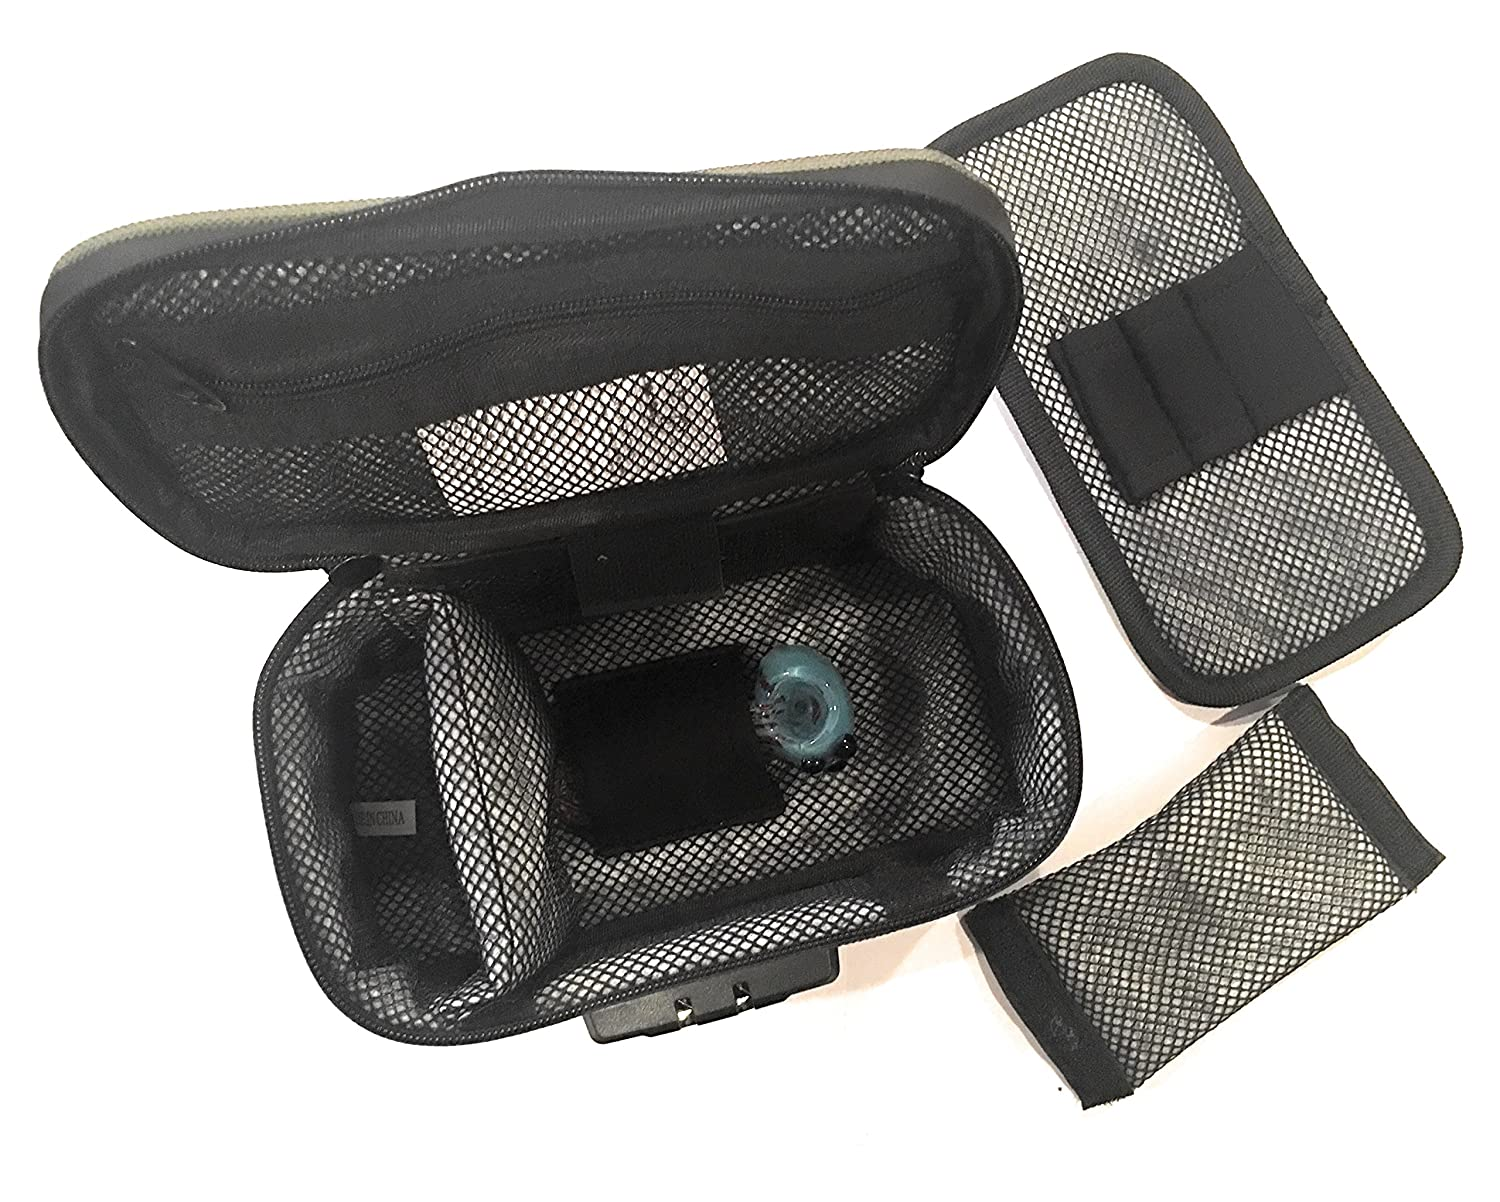 Motaa Smell Proof Case W Combo Lock With Activated Taa Furla Metropolis Comic Carbon Mesh Material Includes A Bonus Incense Spoon Dark Green Health Personal Care